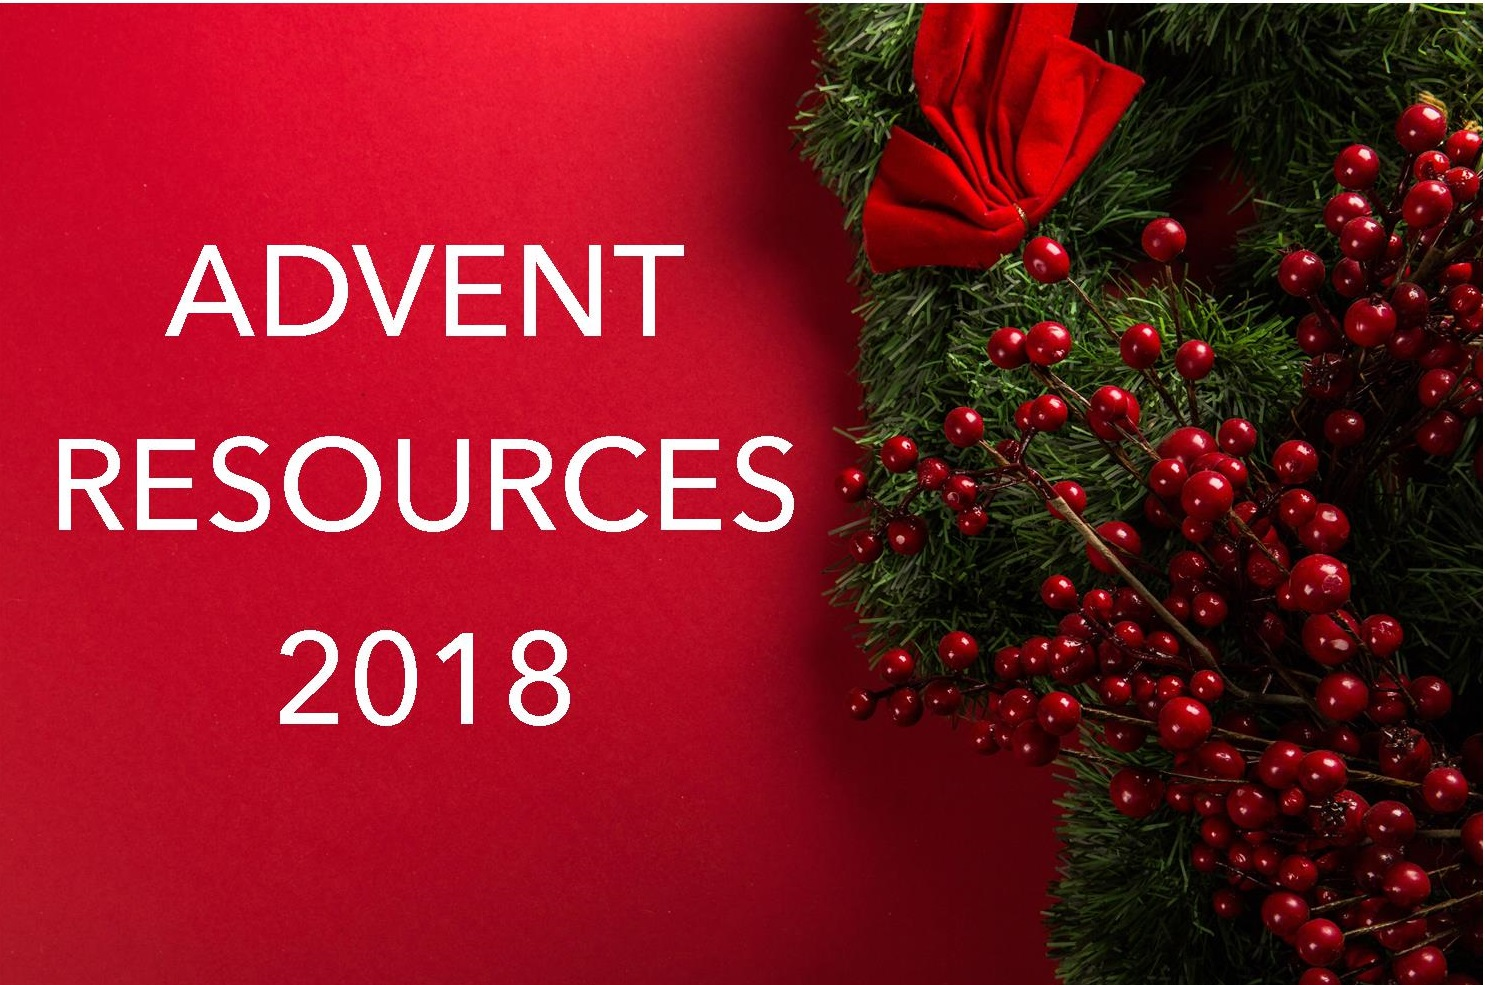 Advent Resources 2018 blog.jpg